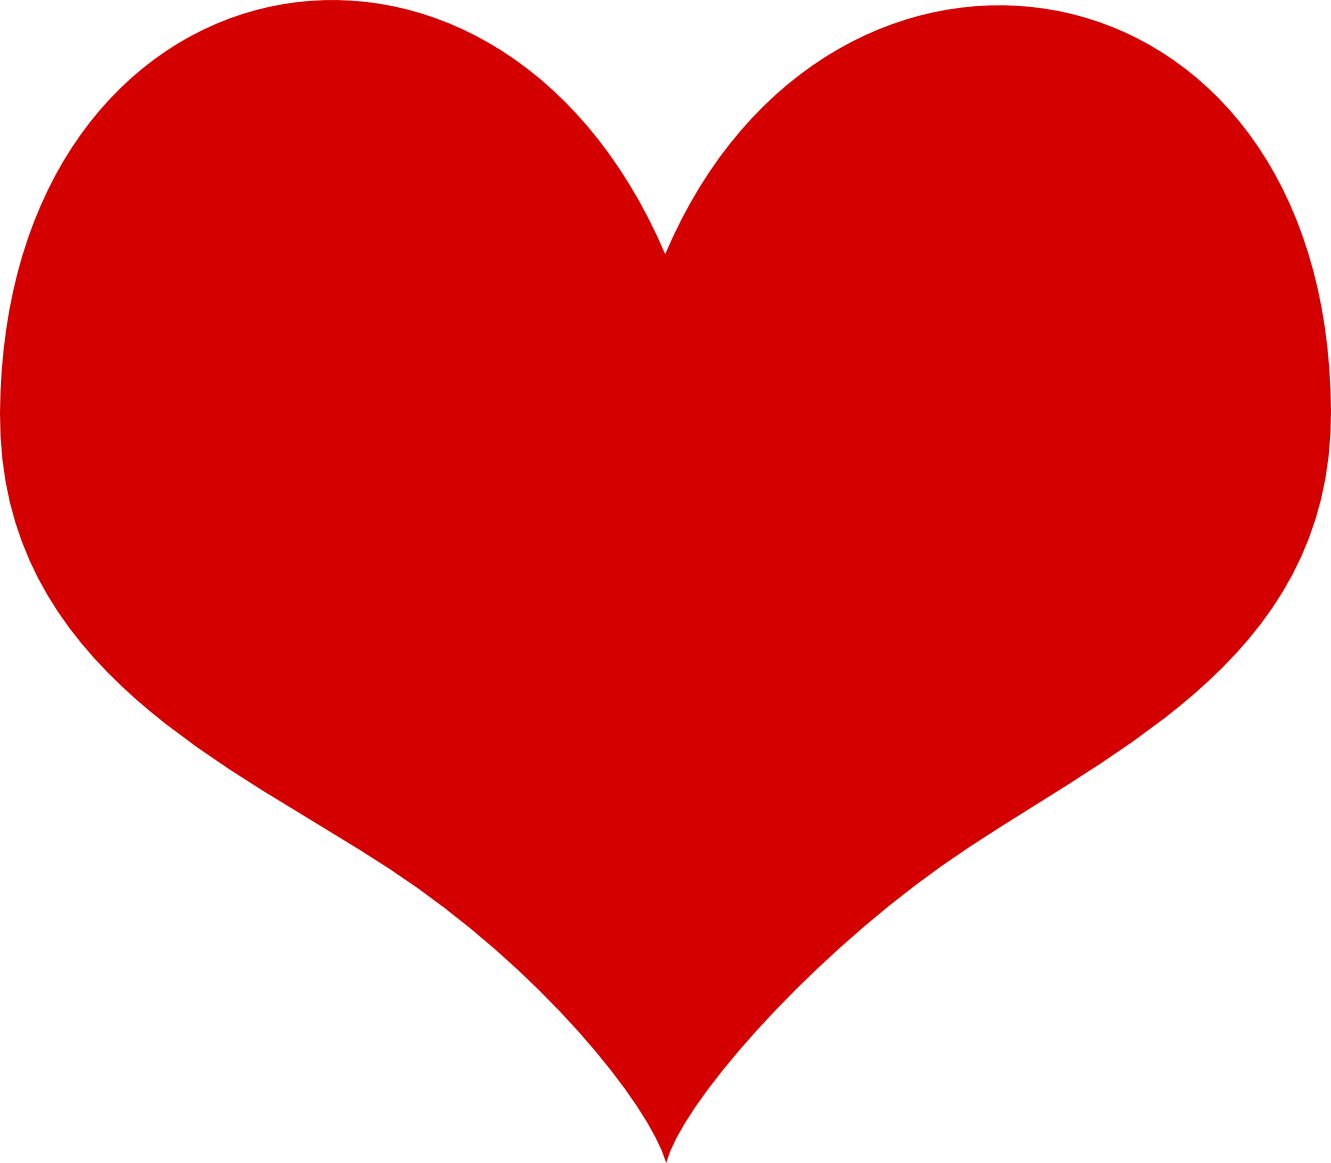 Free Heart Png, Download Free Clip Art, Free Clip Art on.